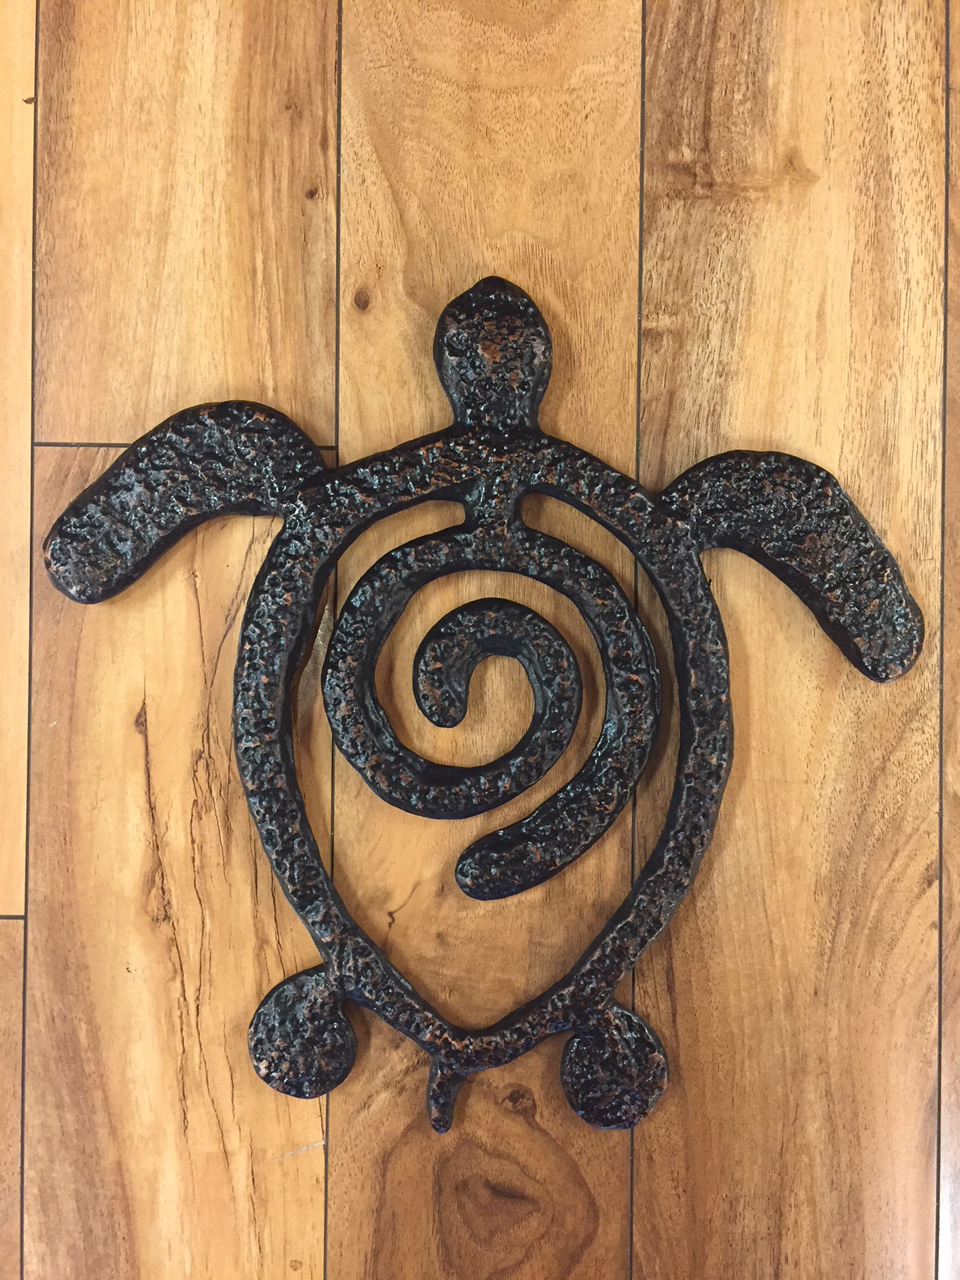 Honu Spiral by Charlie Corda wall hanging sculpture